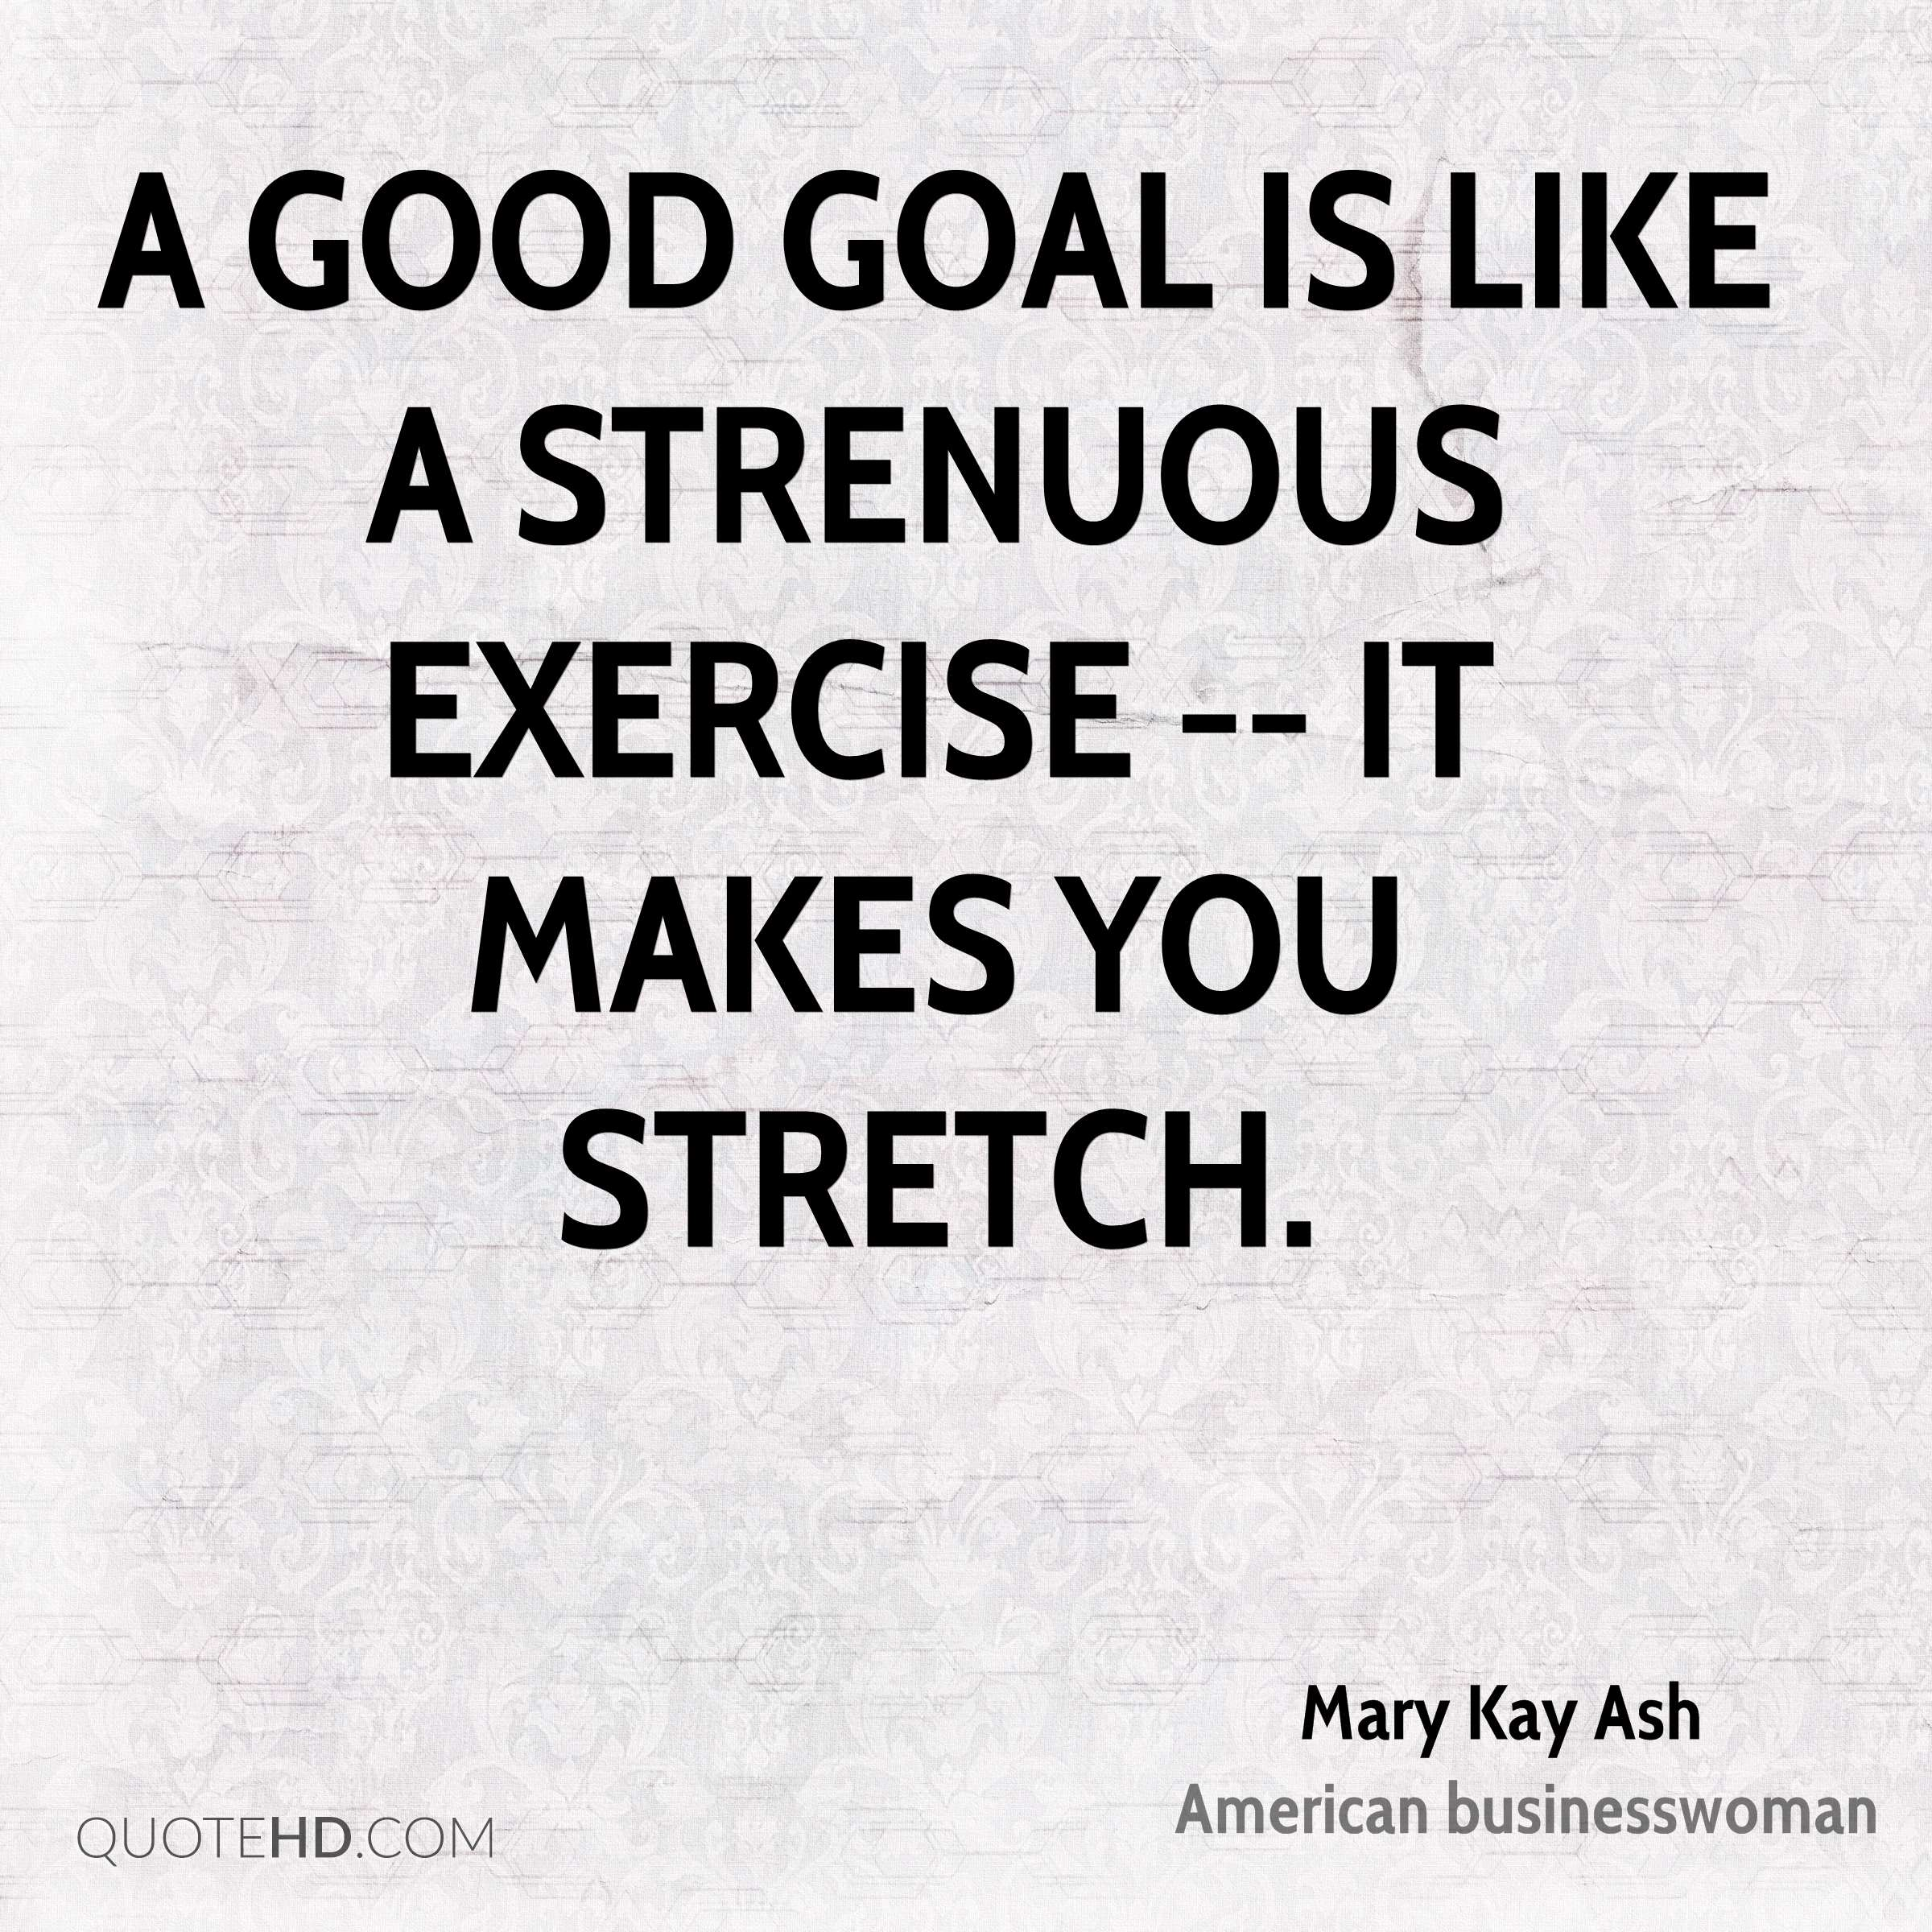 A good goal is like a strenuous exercise -- it makes you stretch.